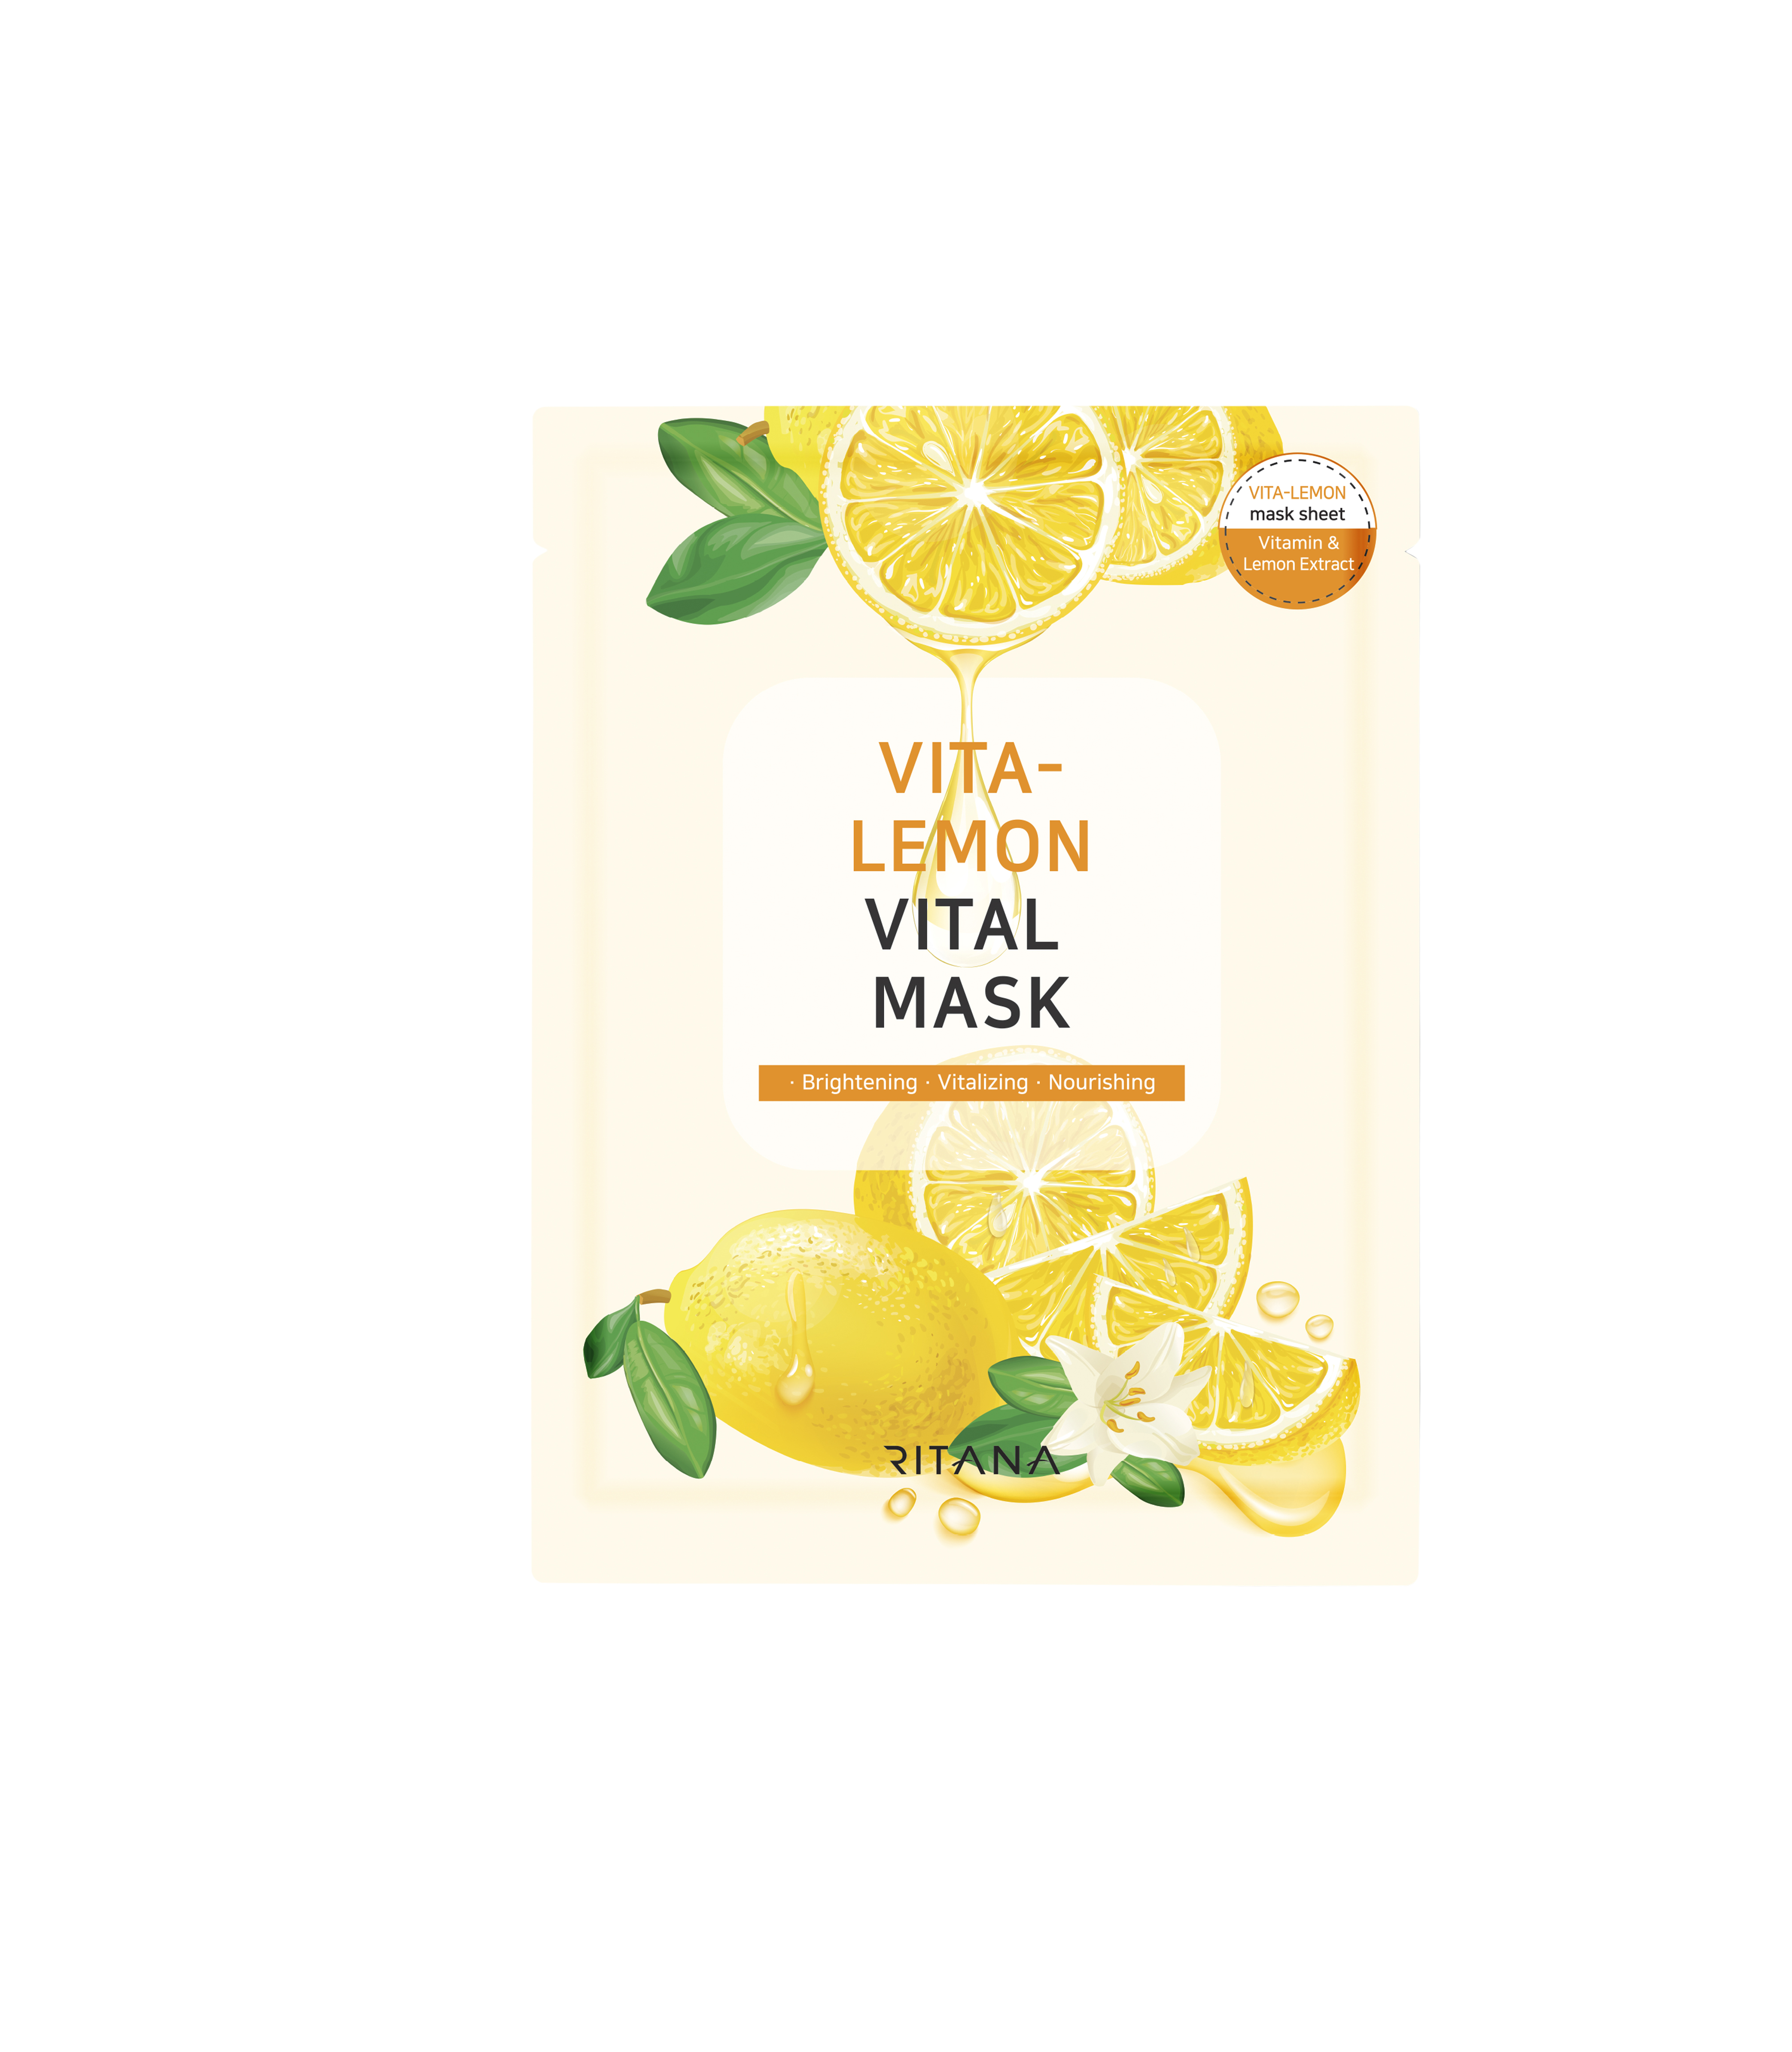 Ritana Vita-Lemon Vital Mask 23ml